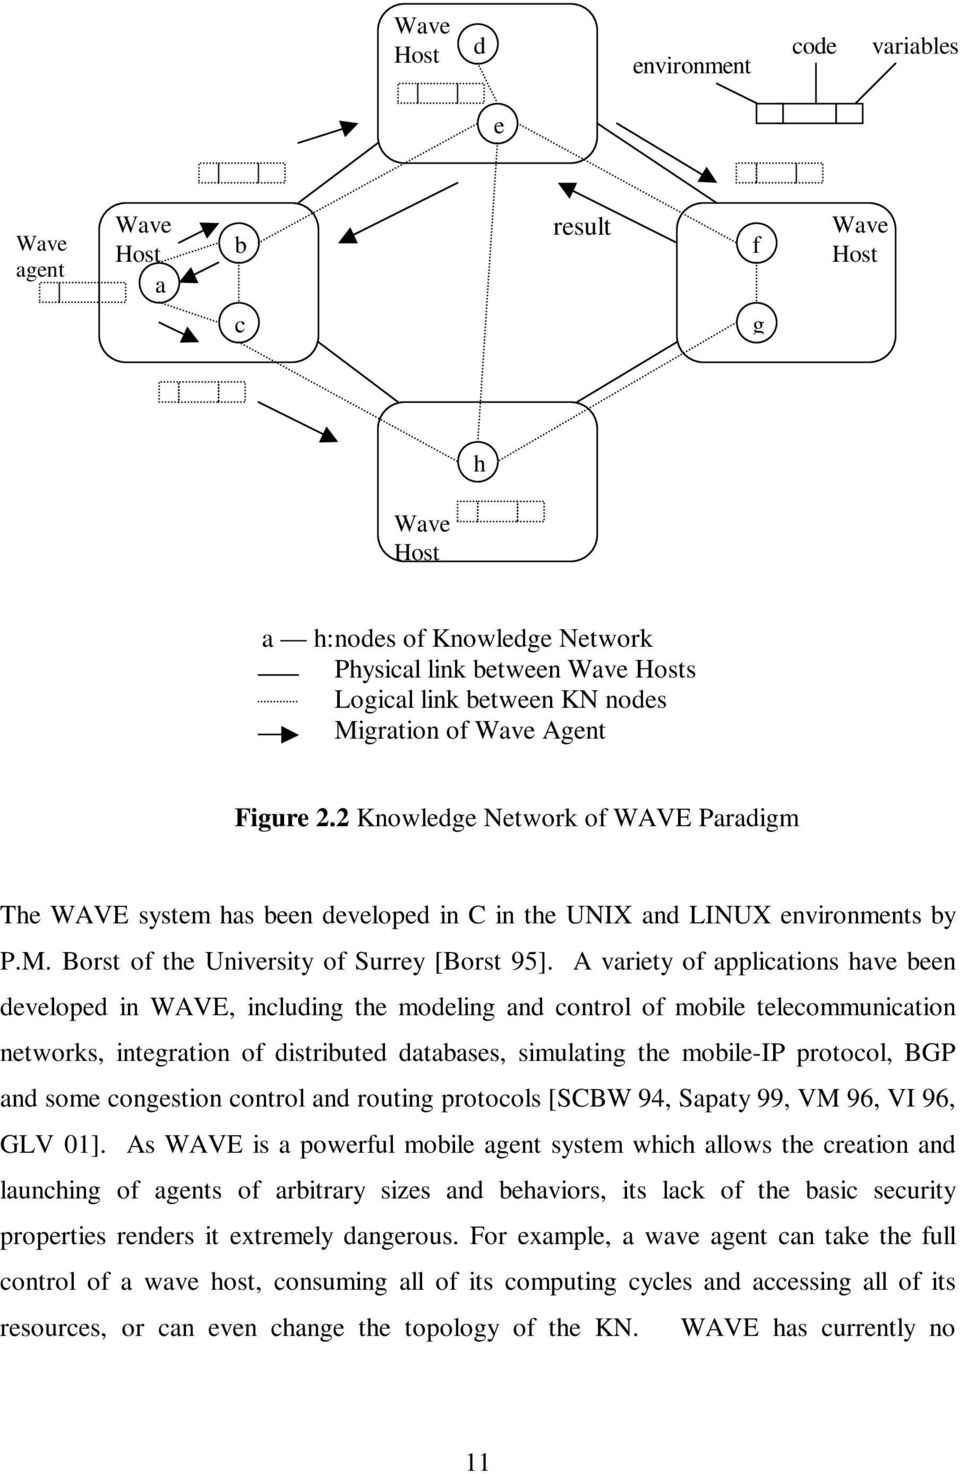 A variety of applications have been developed in WAVE, including the modeling and control of mobile telecommunication networks, integration of distributed databases, simulating the mobile-ip